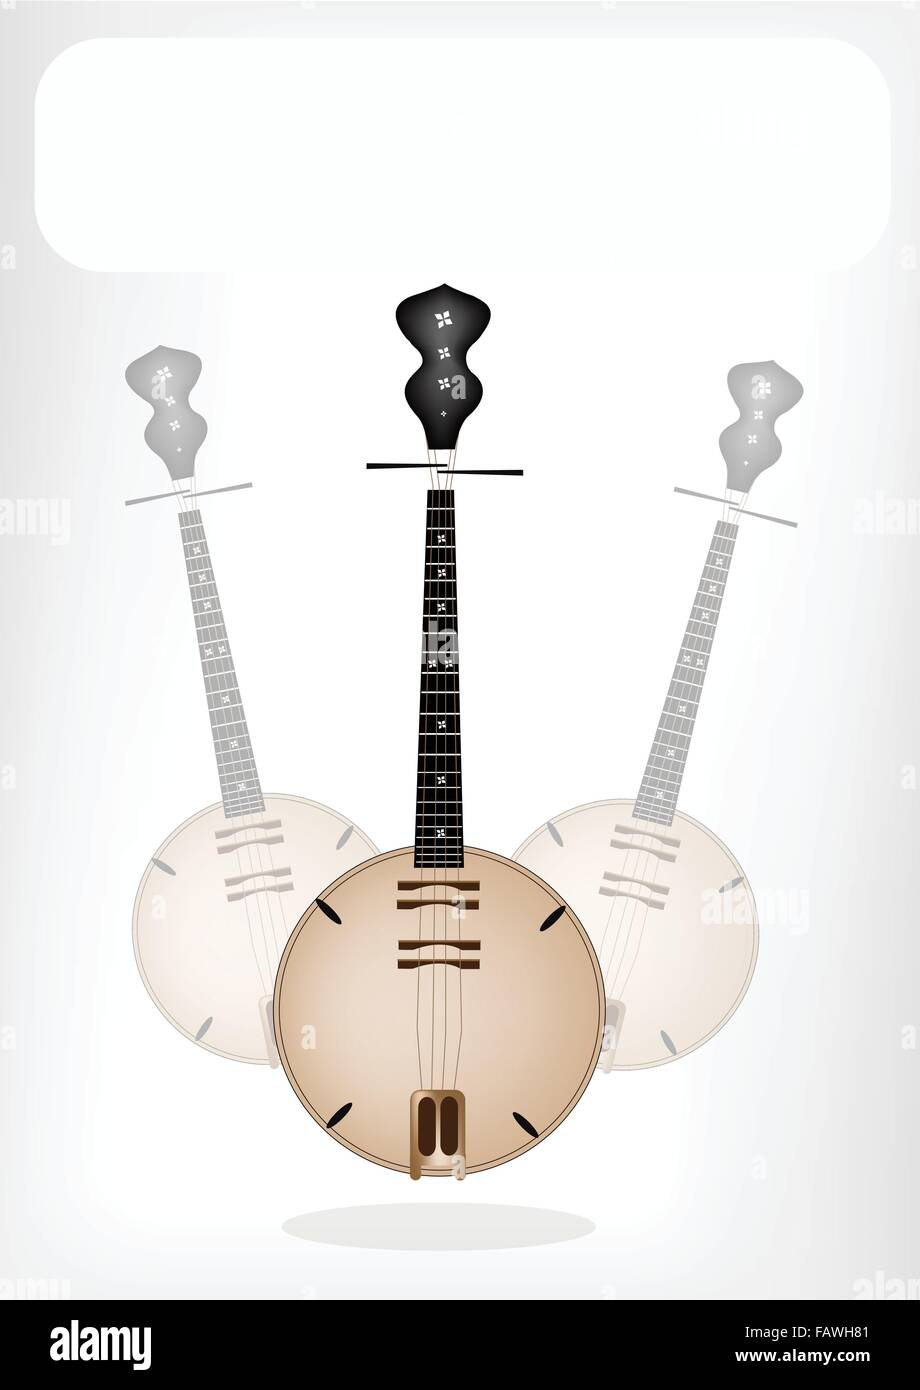 Music Instrument, An Illustration Brown Color of Banjo or Dan Nguyet with White Label for Copy Space and Text Decorated - Stock Image